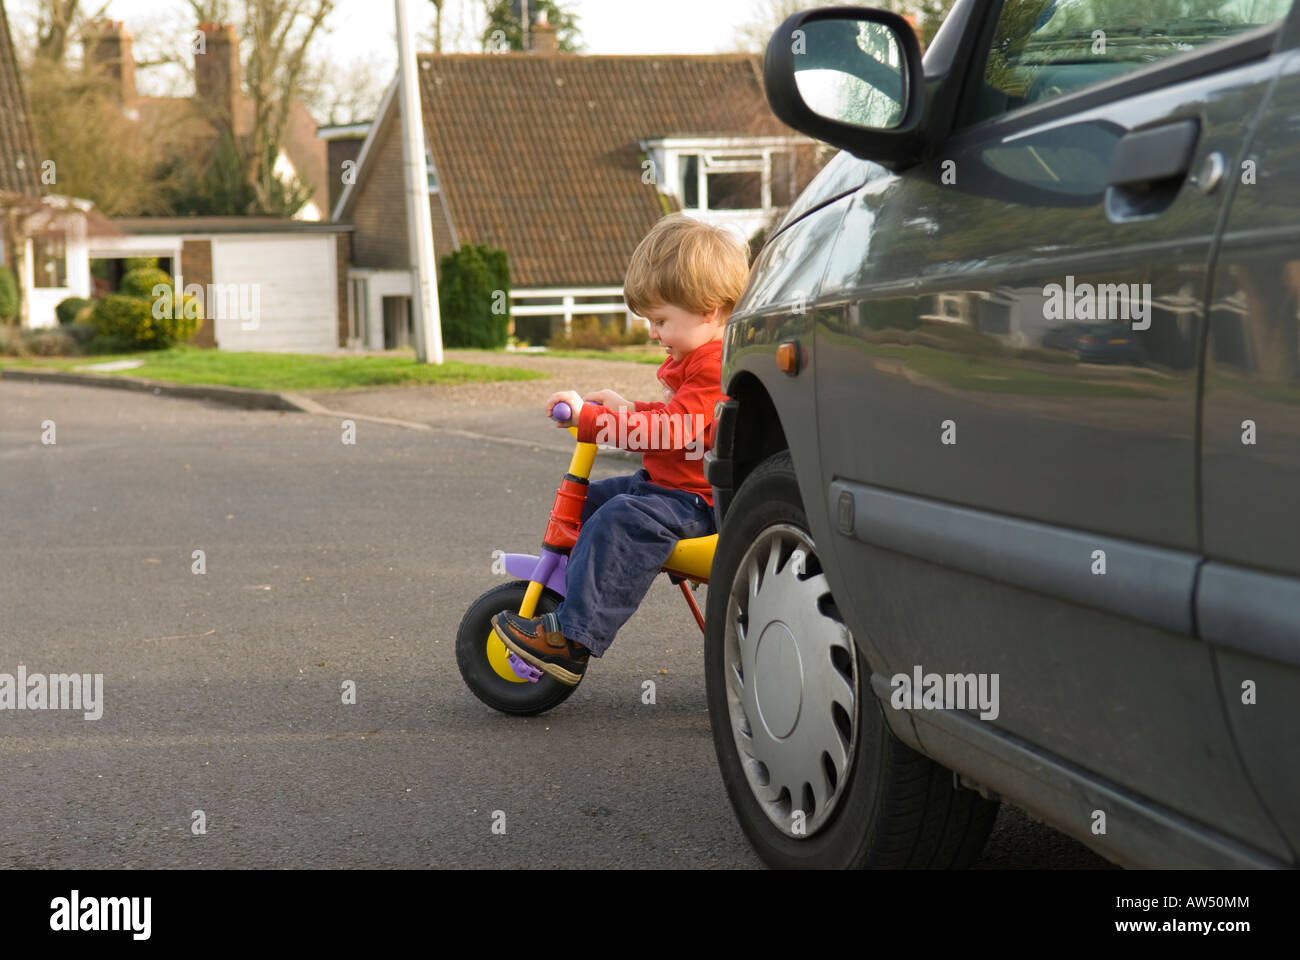 two year old boy on bike in danger on road pulling out from behind a